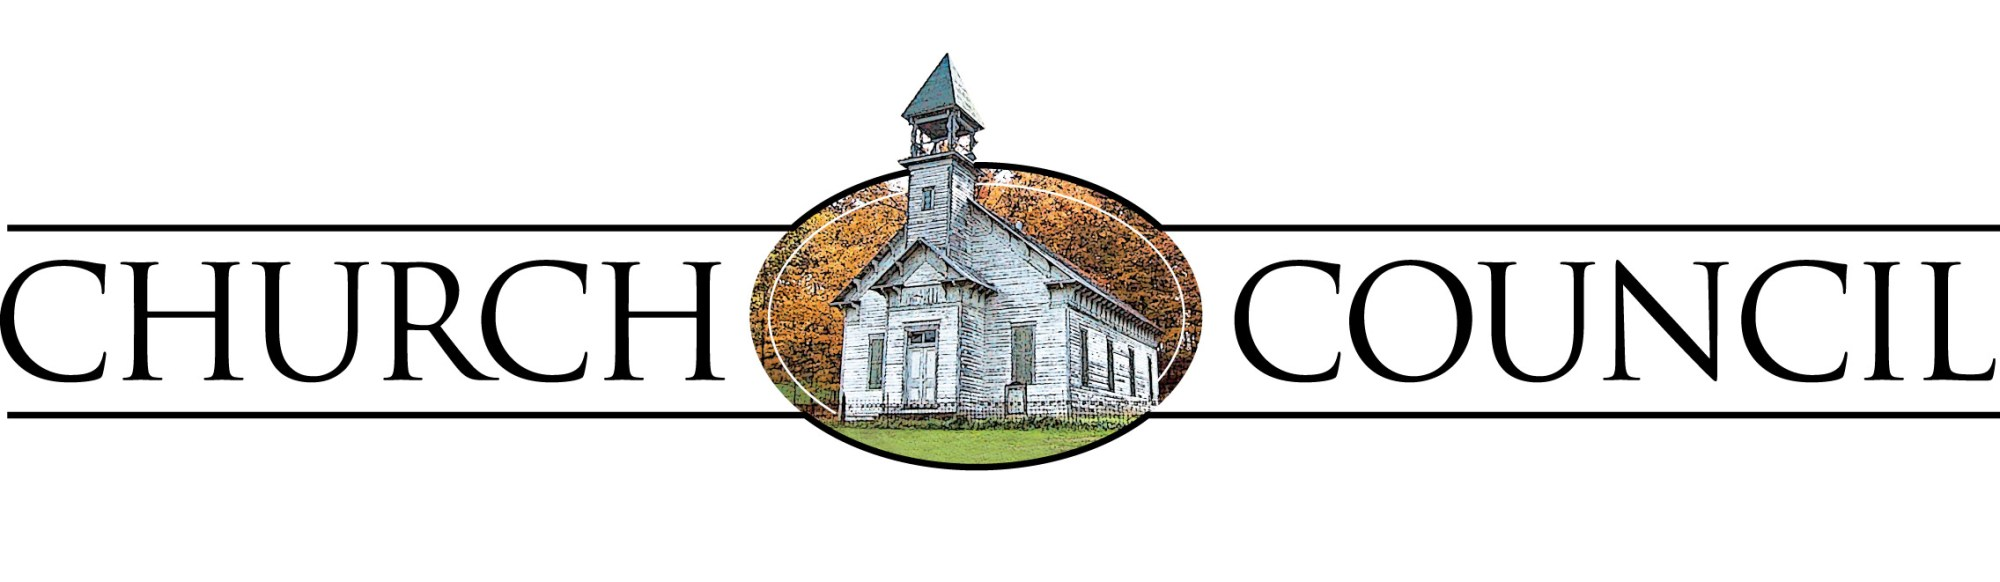 hight resolution of church council clipart